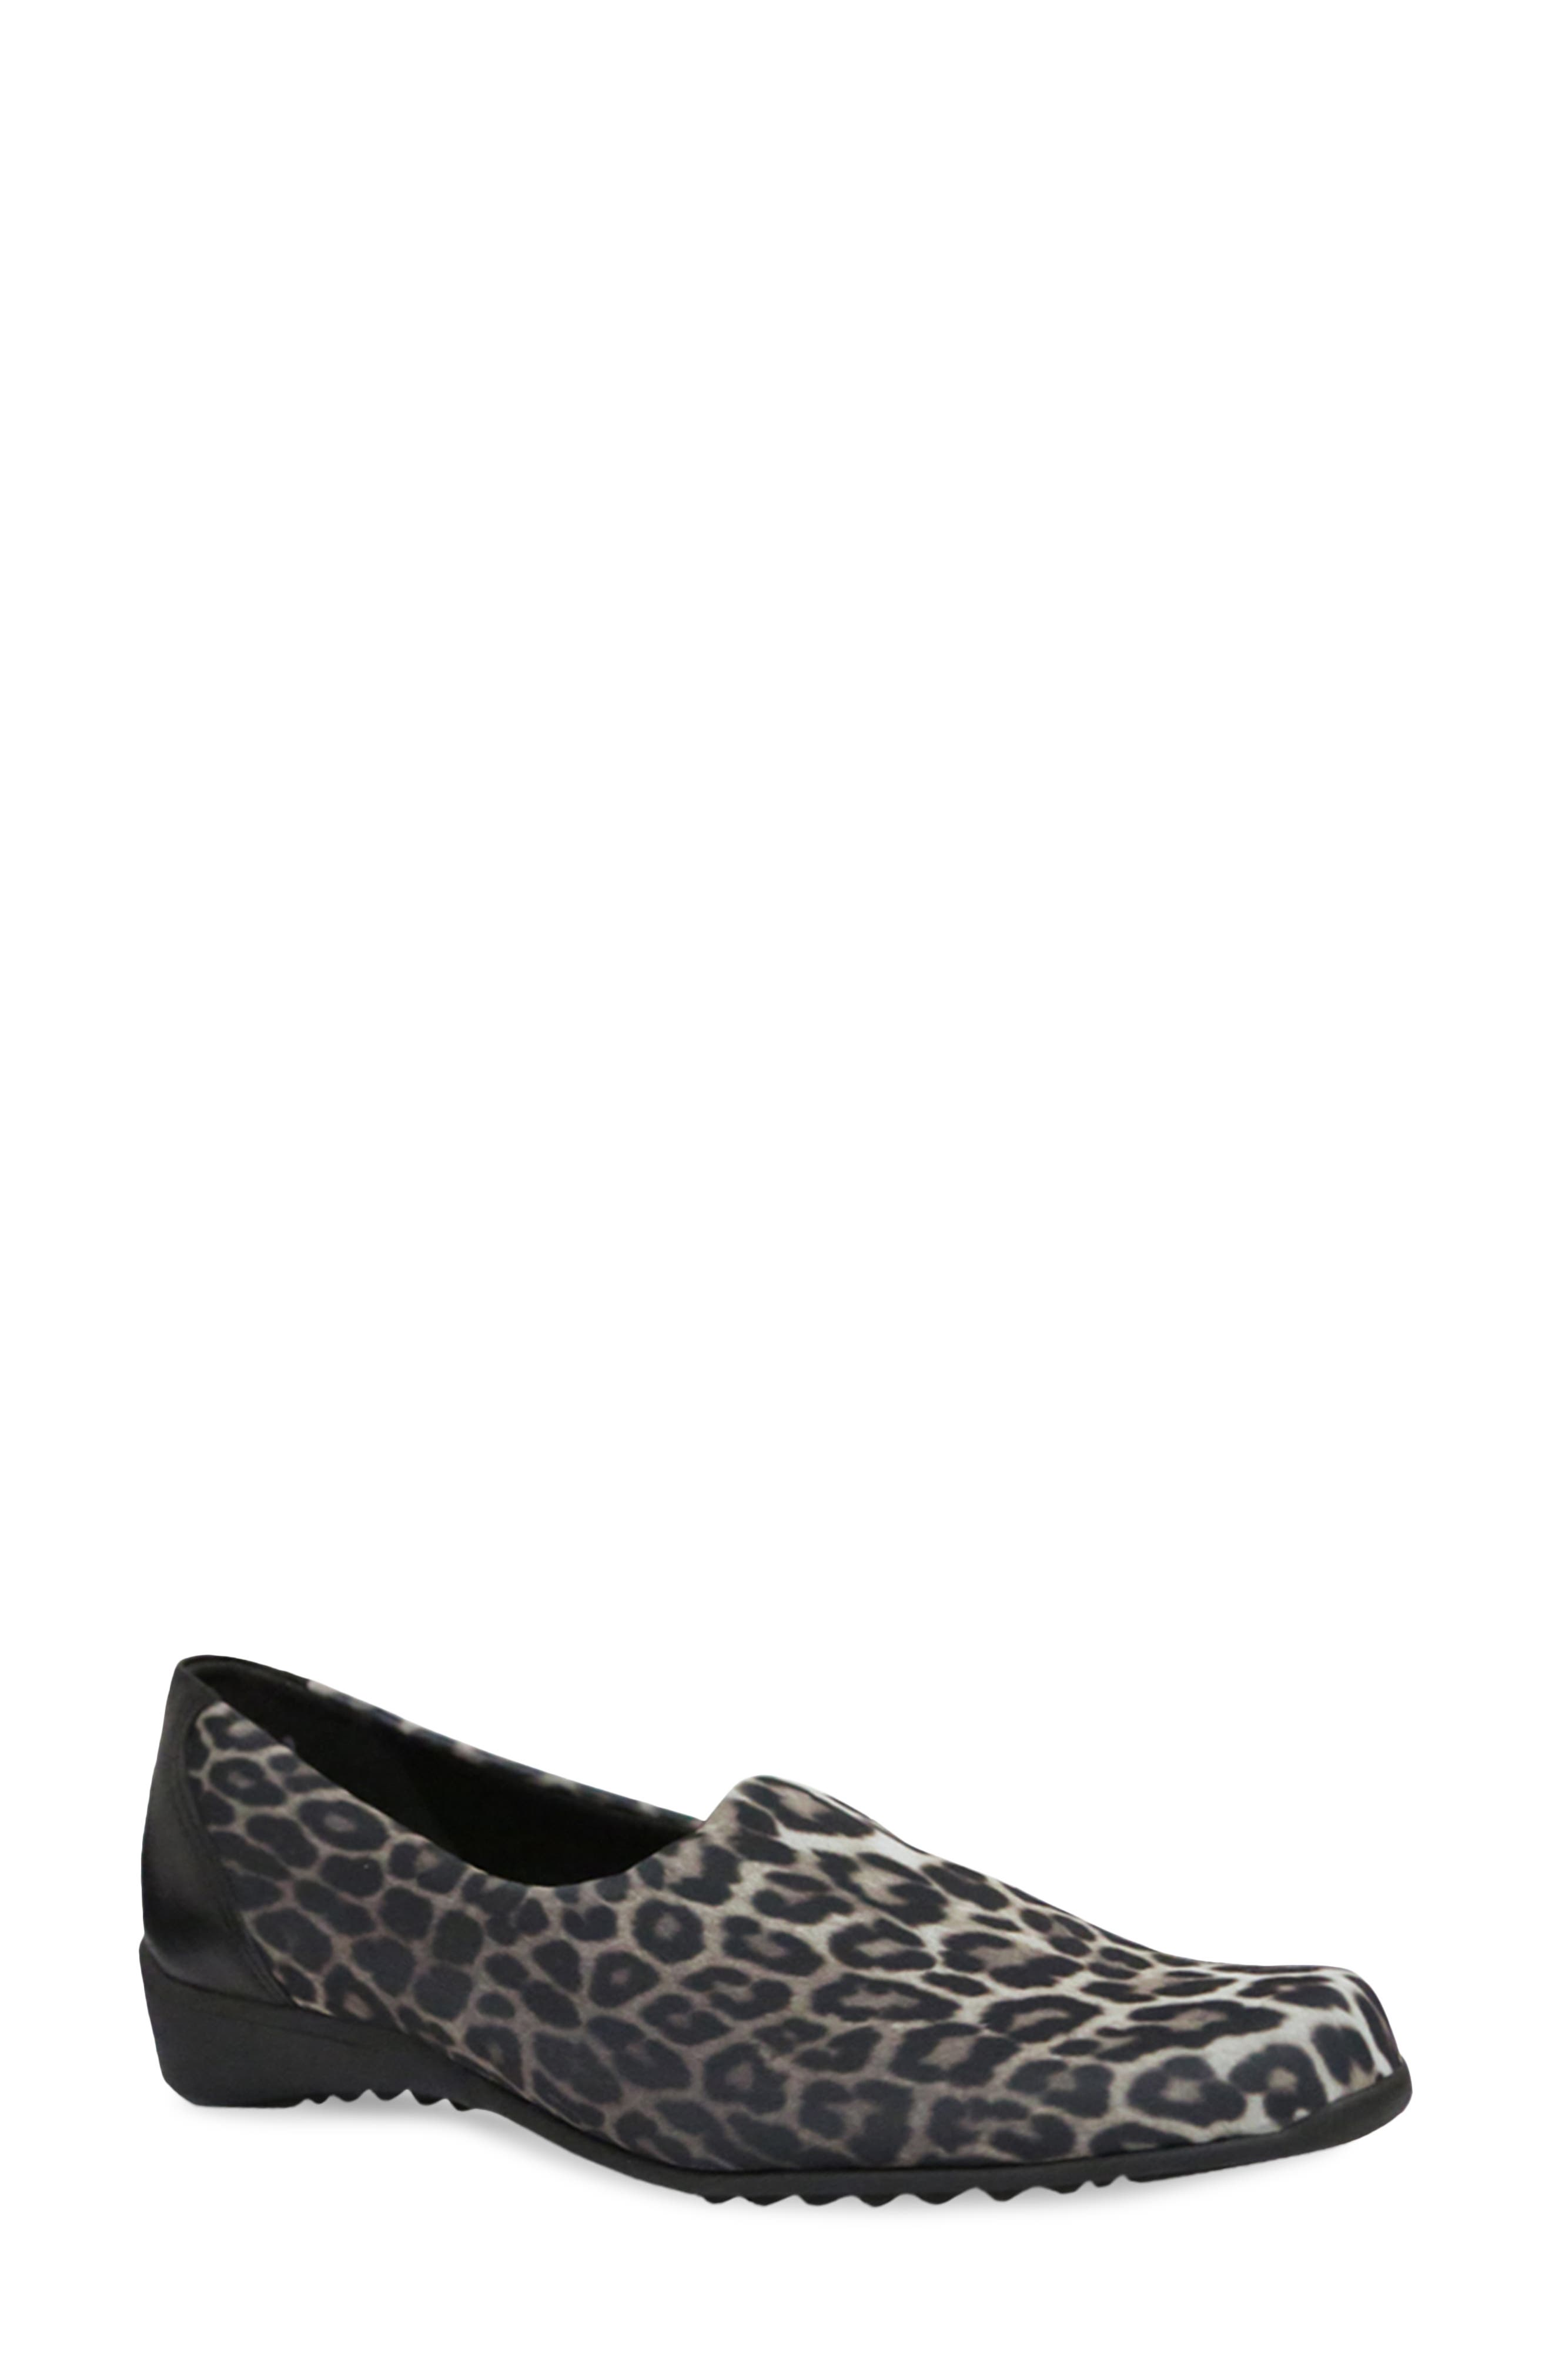 Women's Munro Shoes | Nordstrom